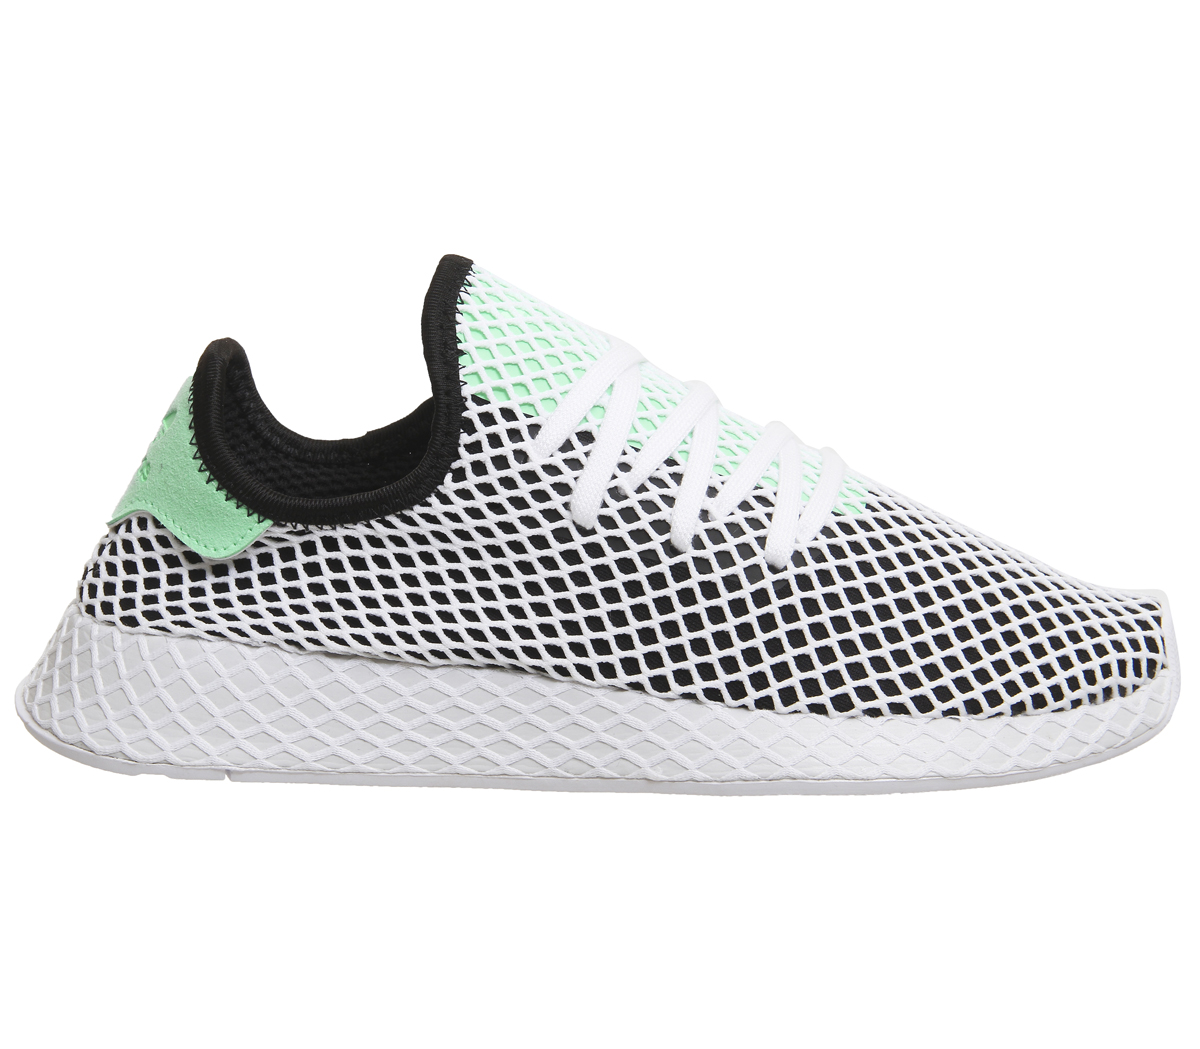 01323b09e3a Mens Adidas Deerupt Trainers CORE BLACK EASY GREEN WHITE Trainers ...